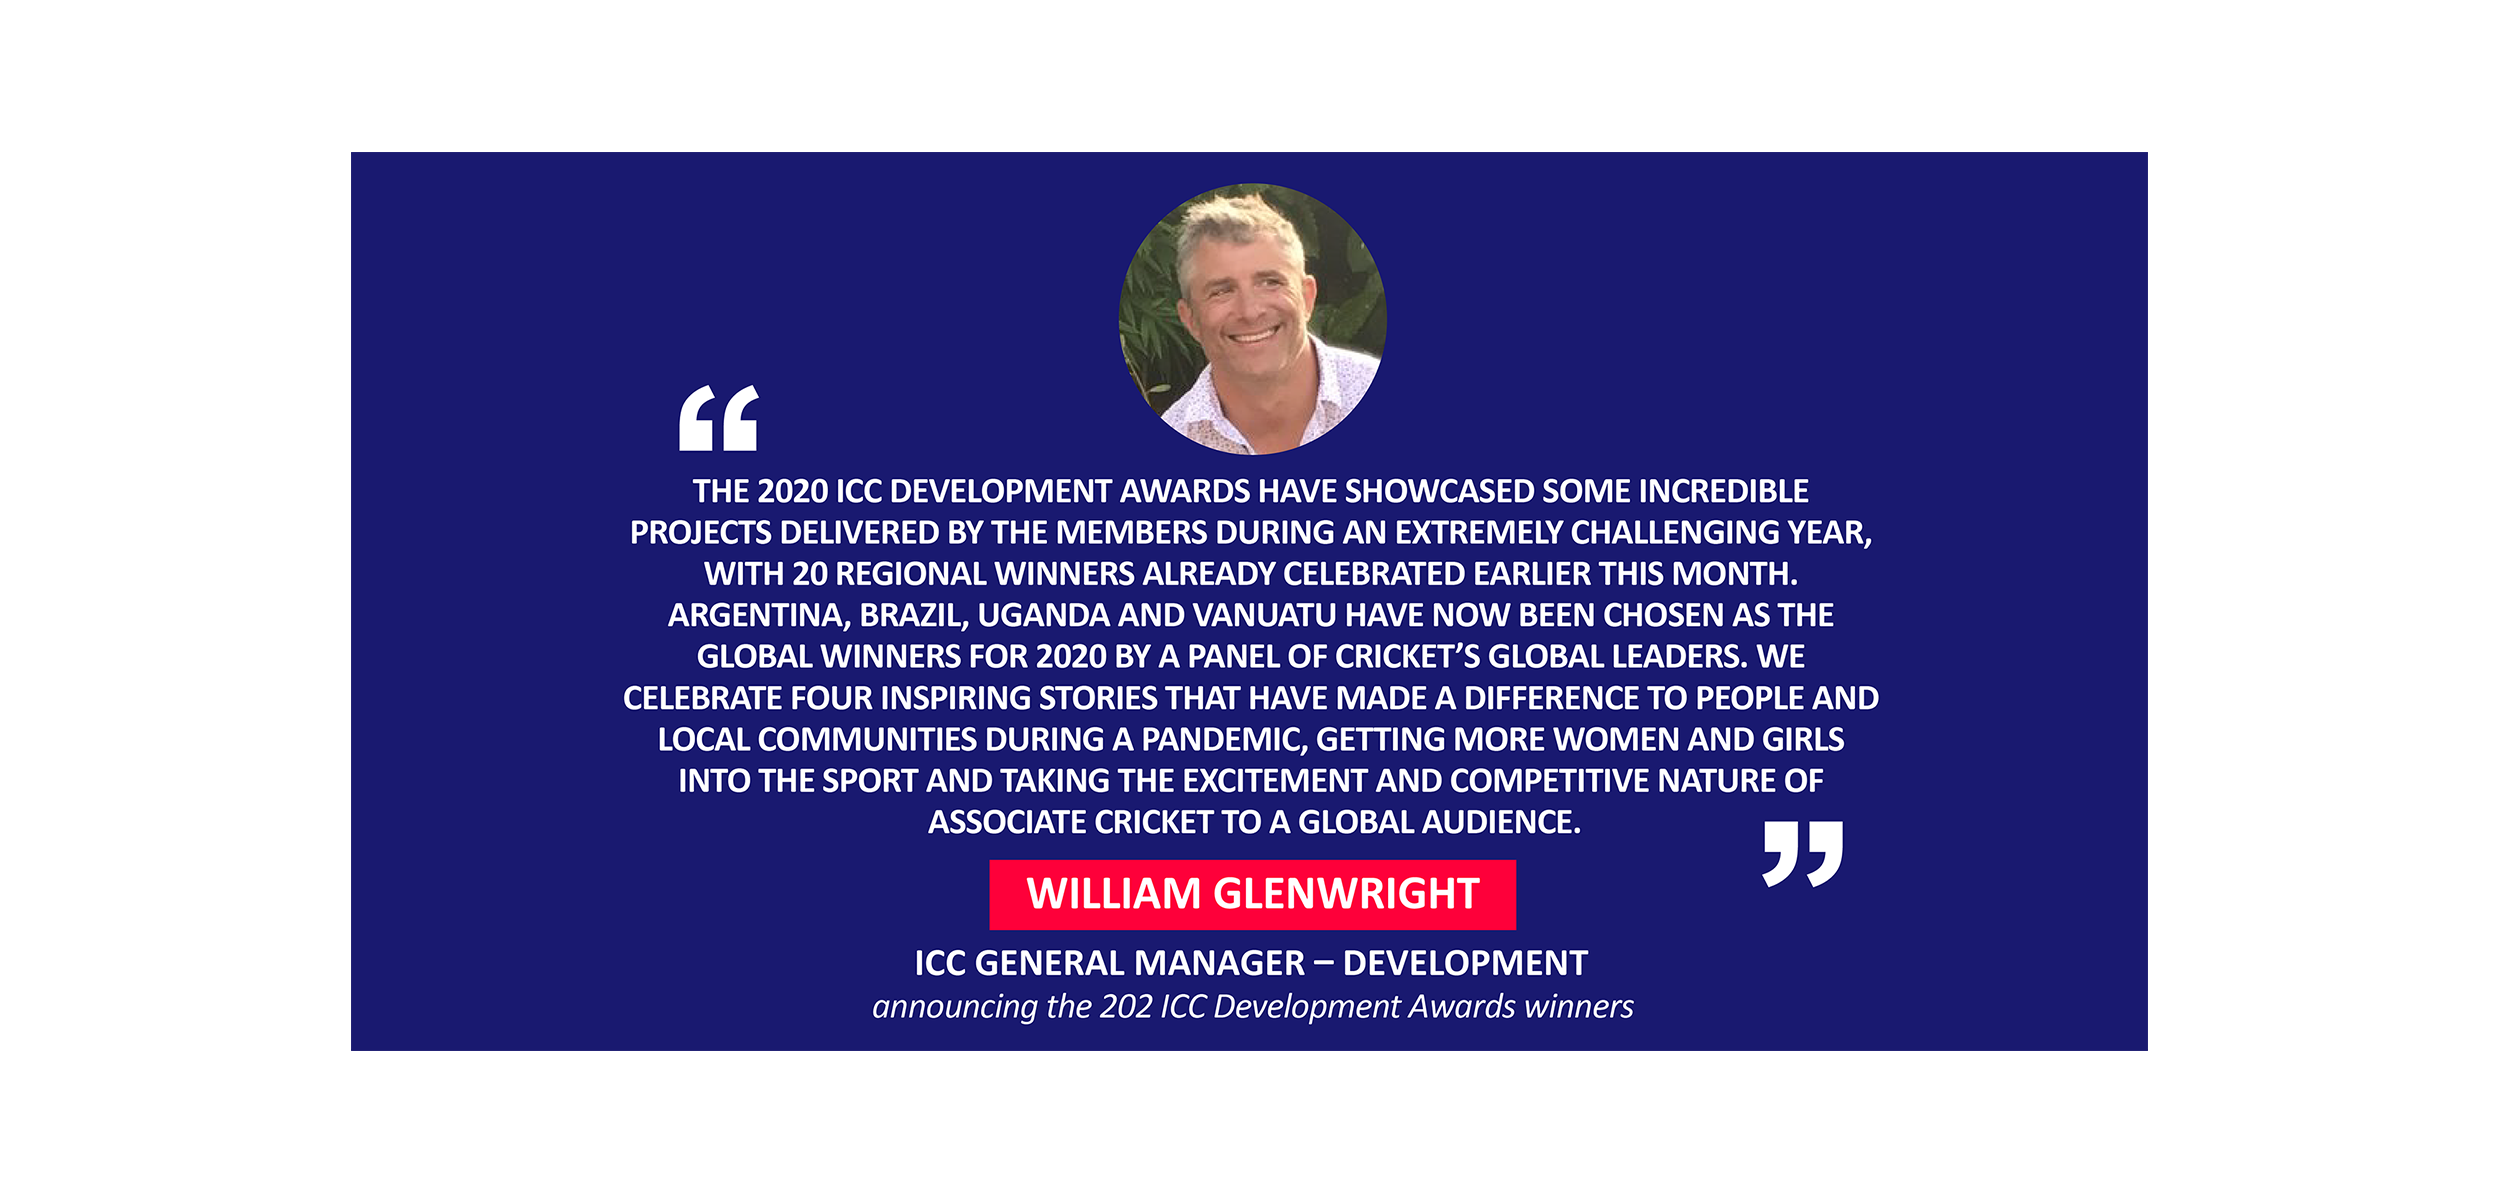 William Glenwright , ICC General Manager – Development announcing the 202 ICC Development Awards winners